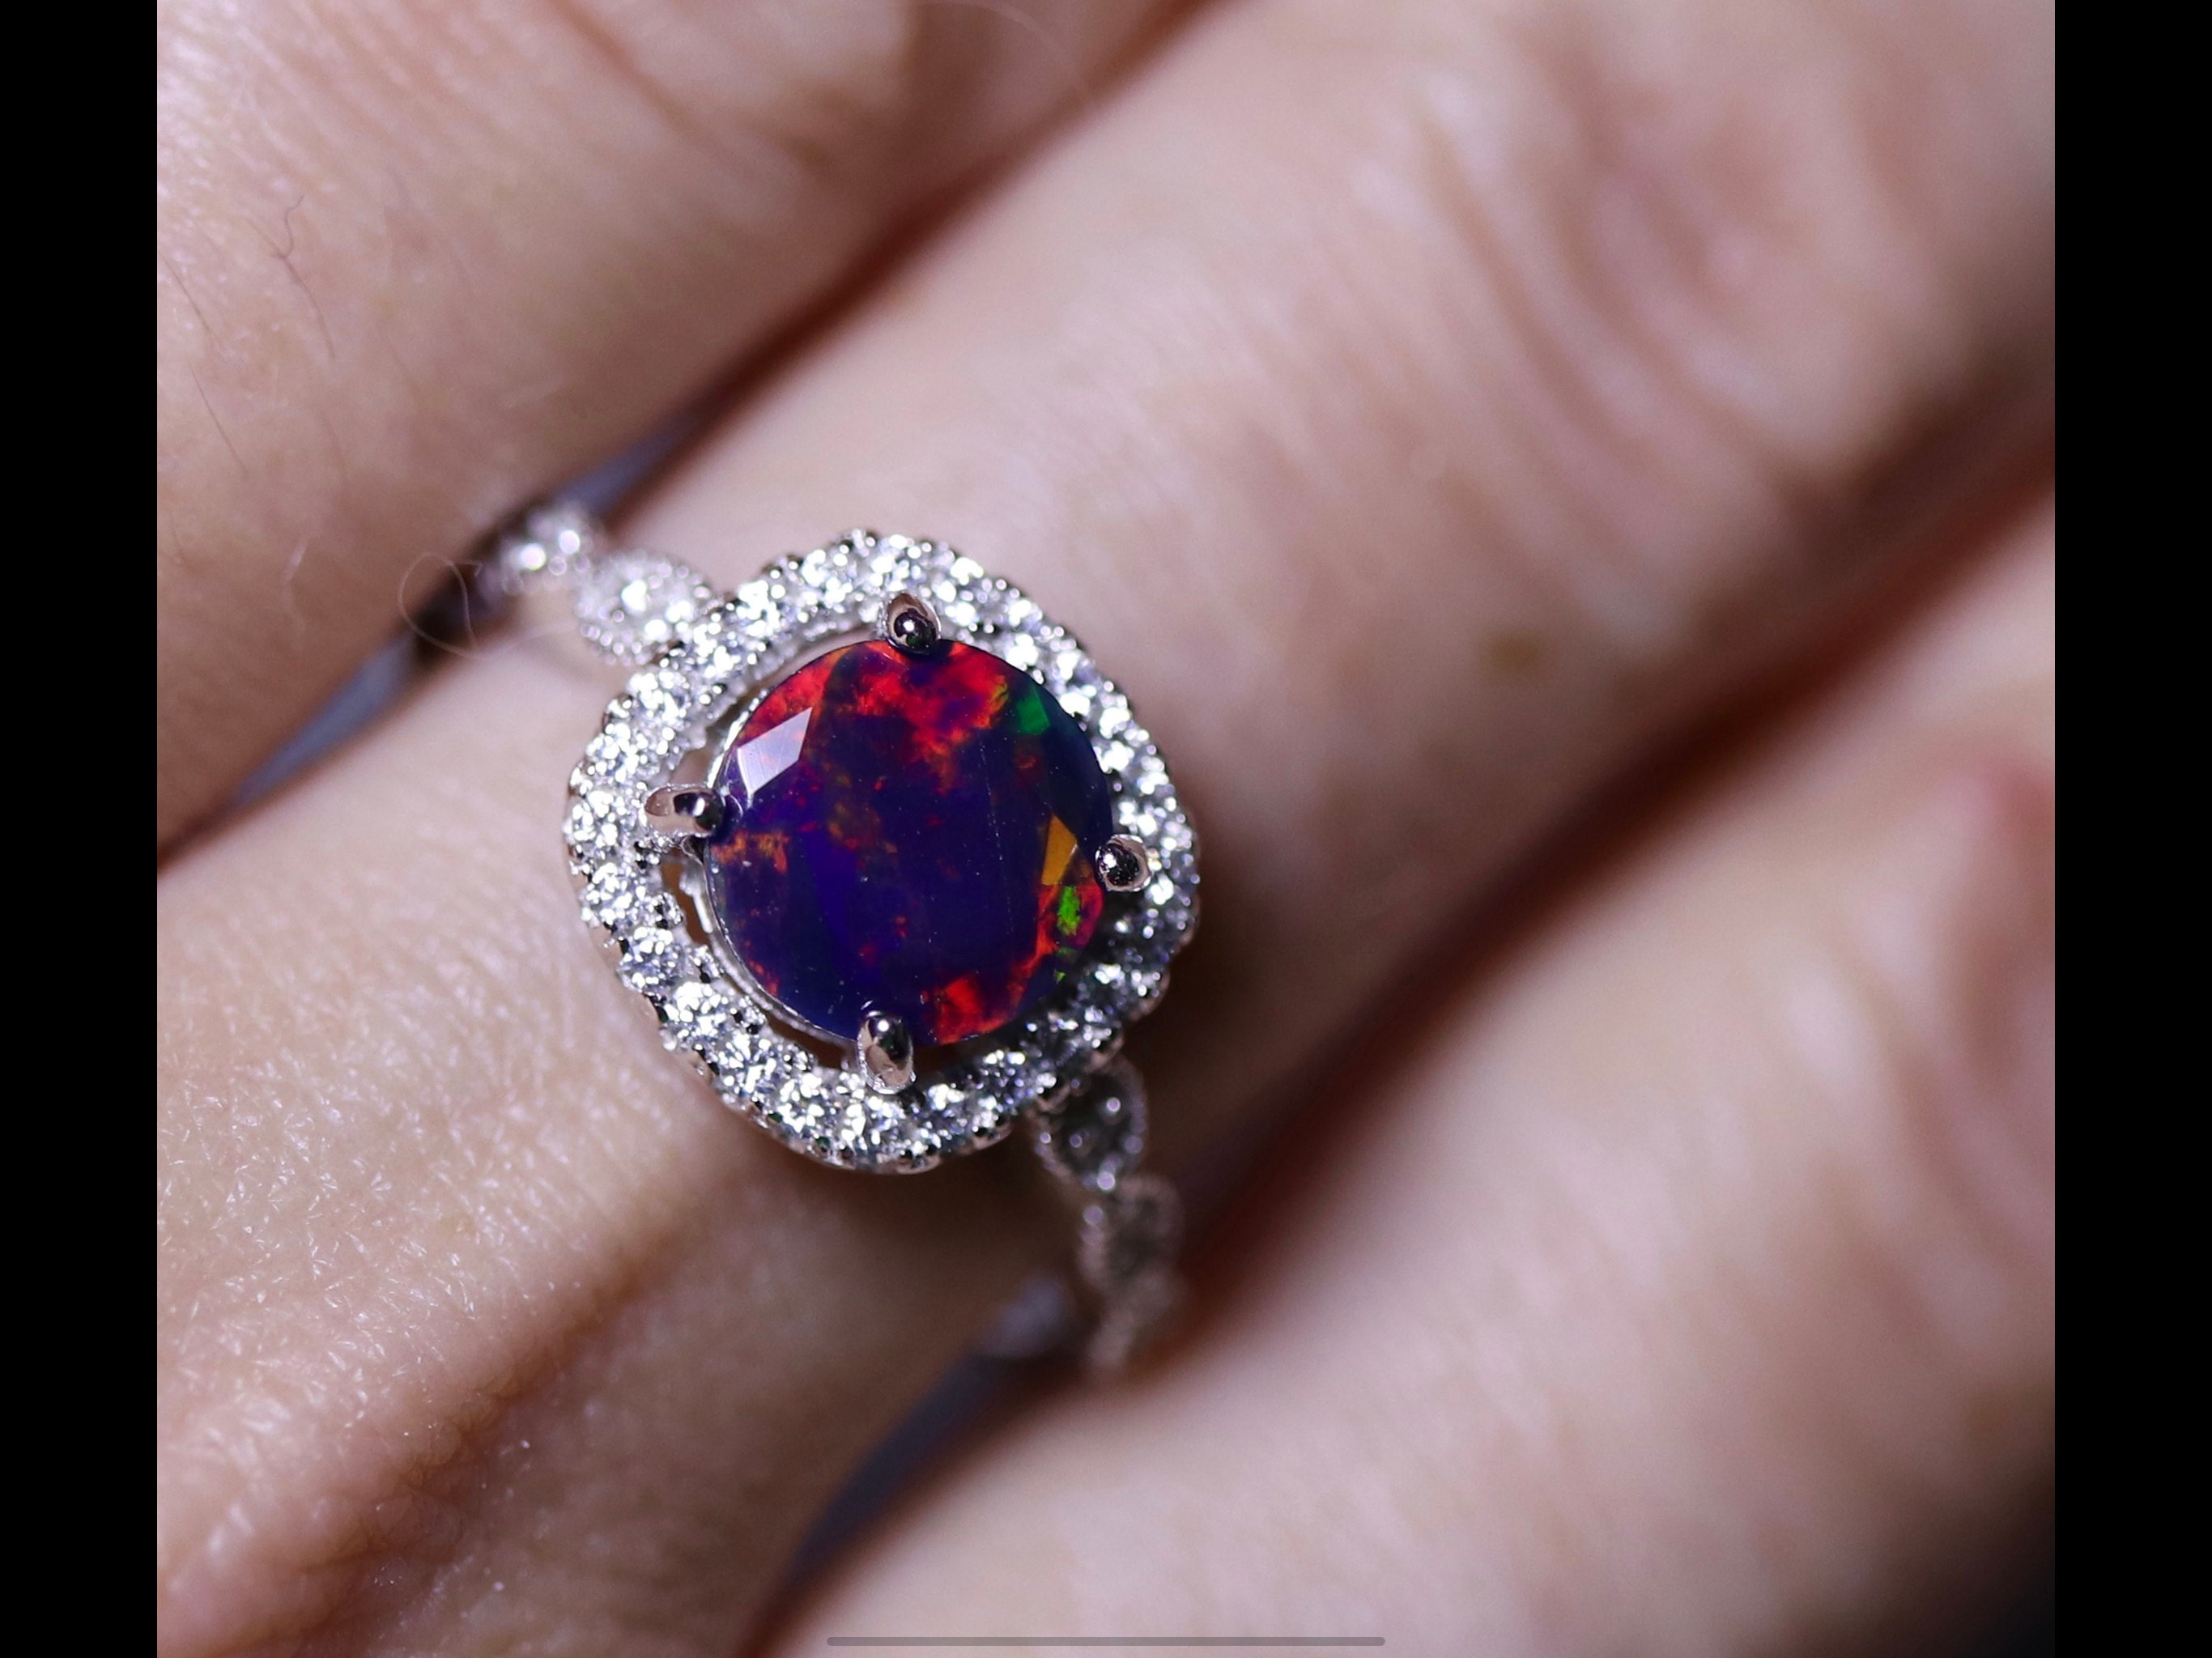 Sterling silver black opal engagement ring setting with matching band